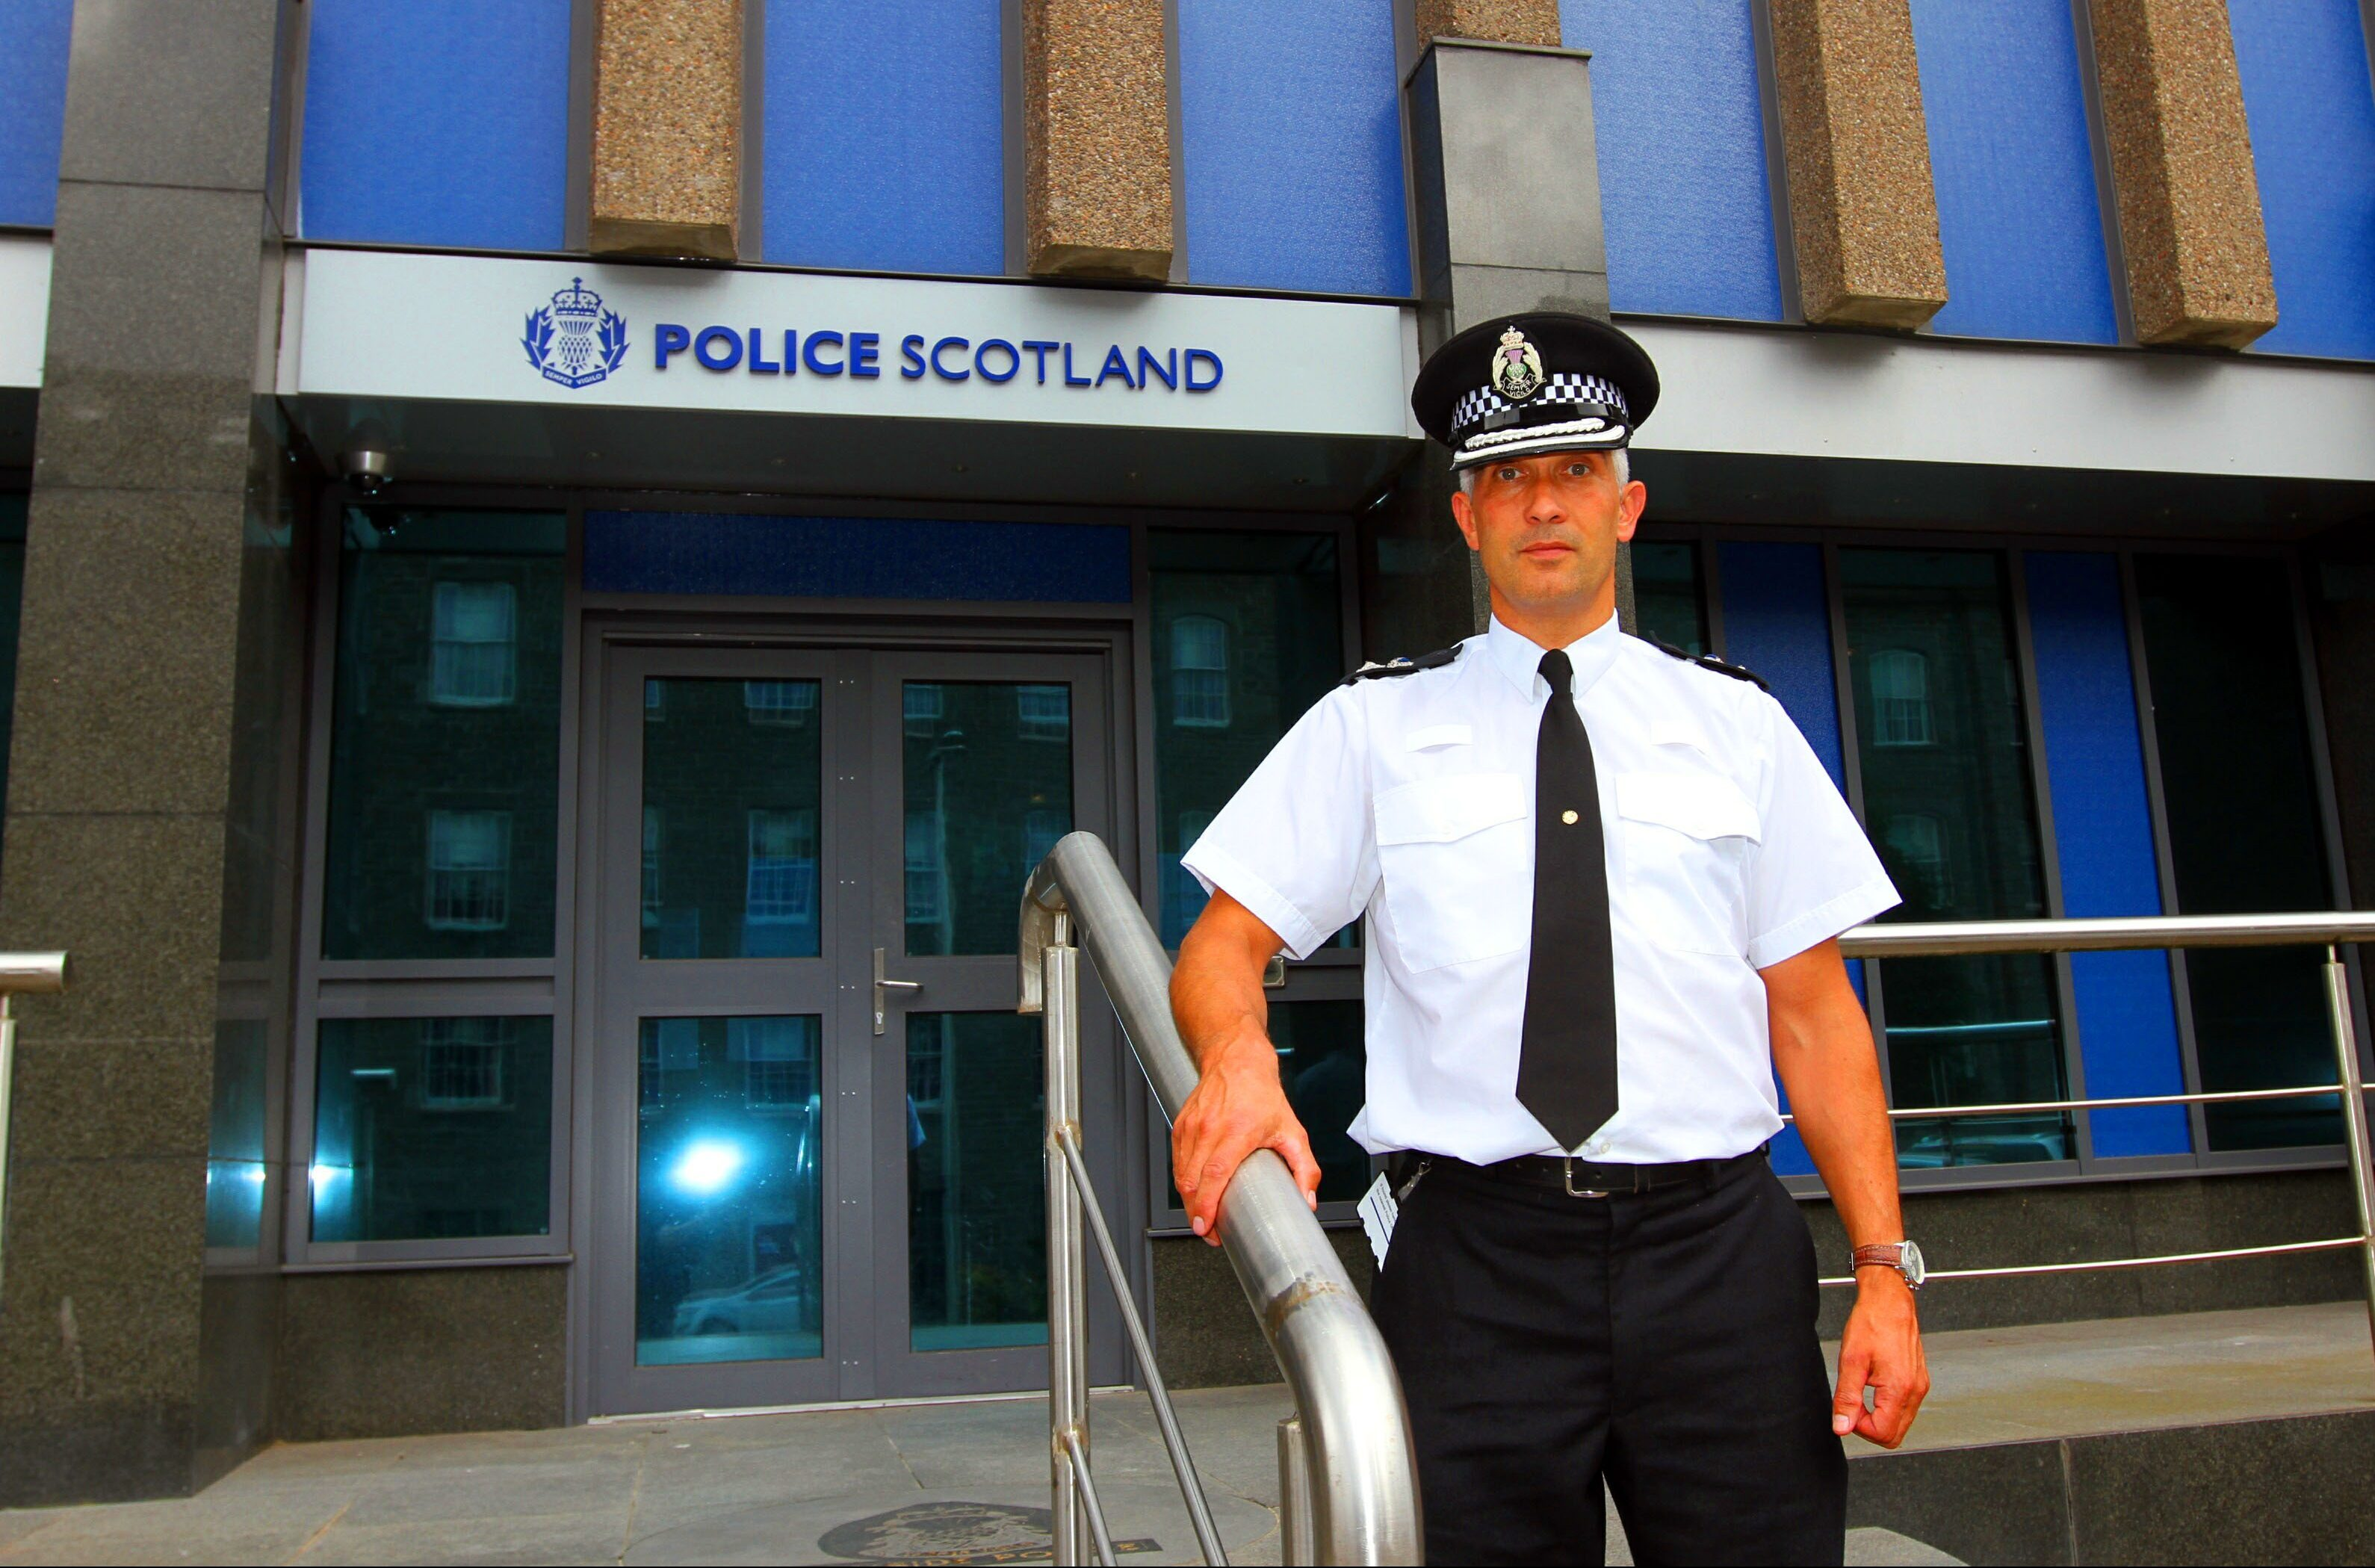 Chief Superintendent Paul Anderson